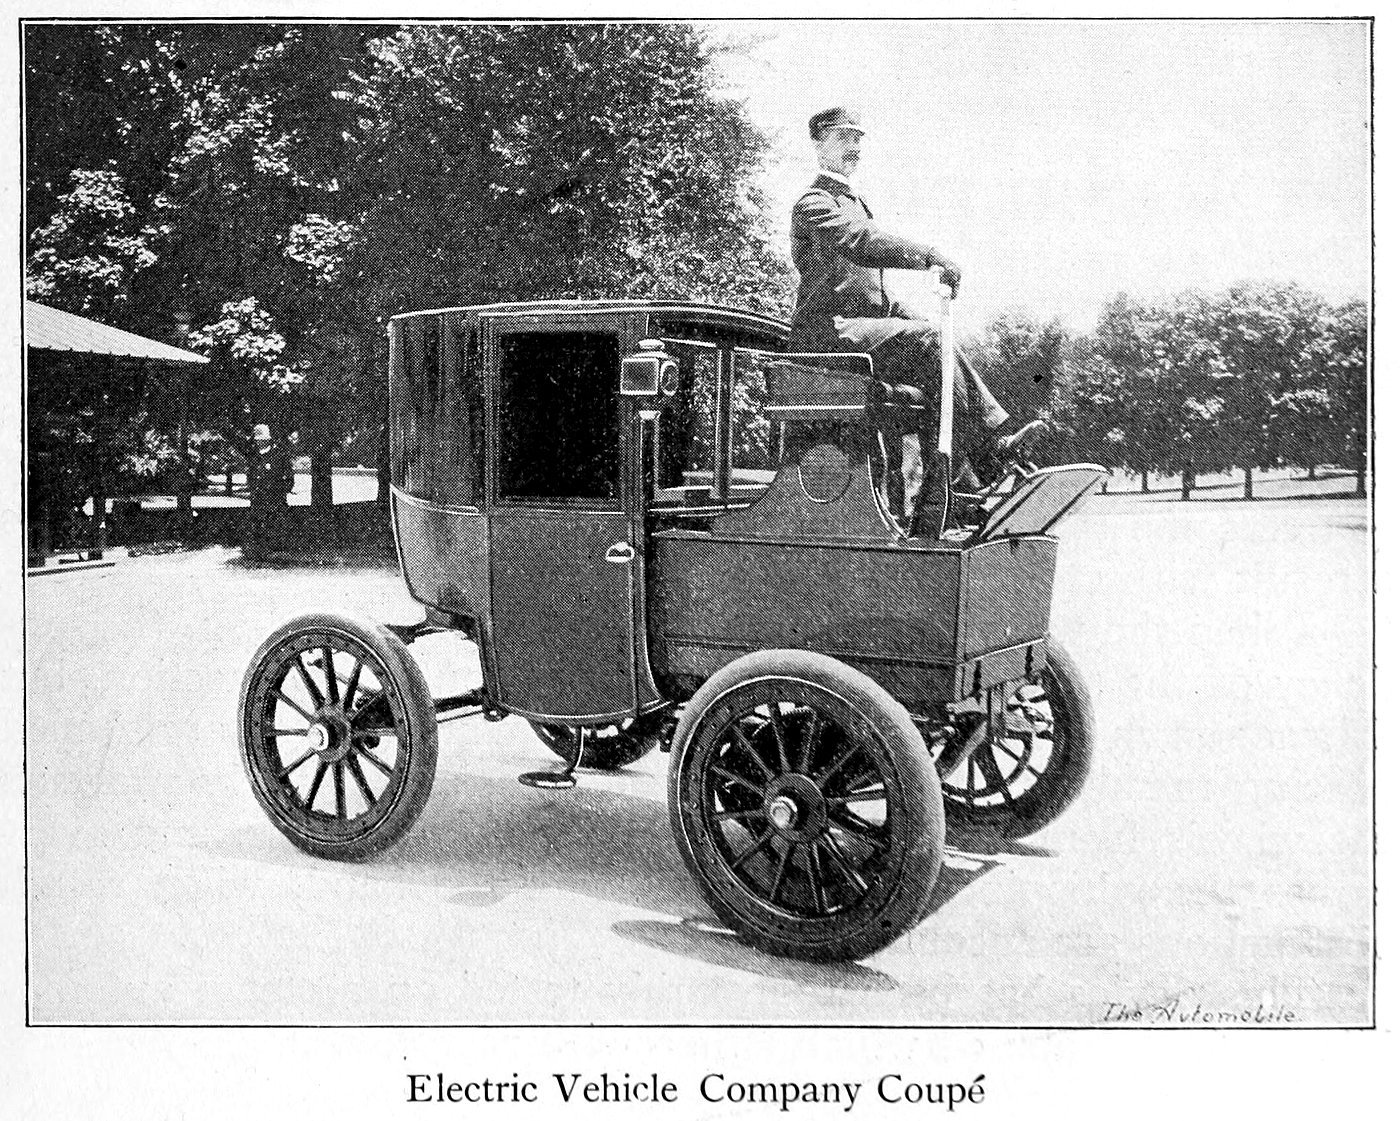 Electric vehicle company Coupe (1899)